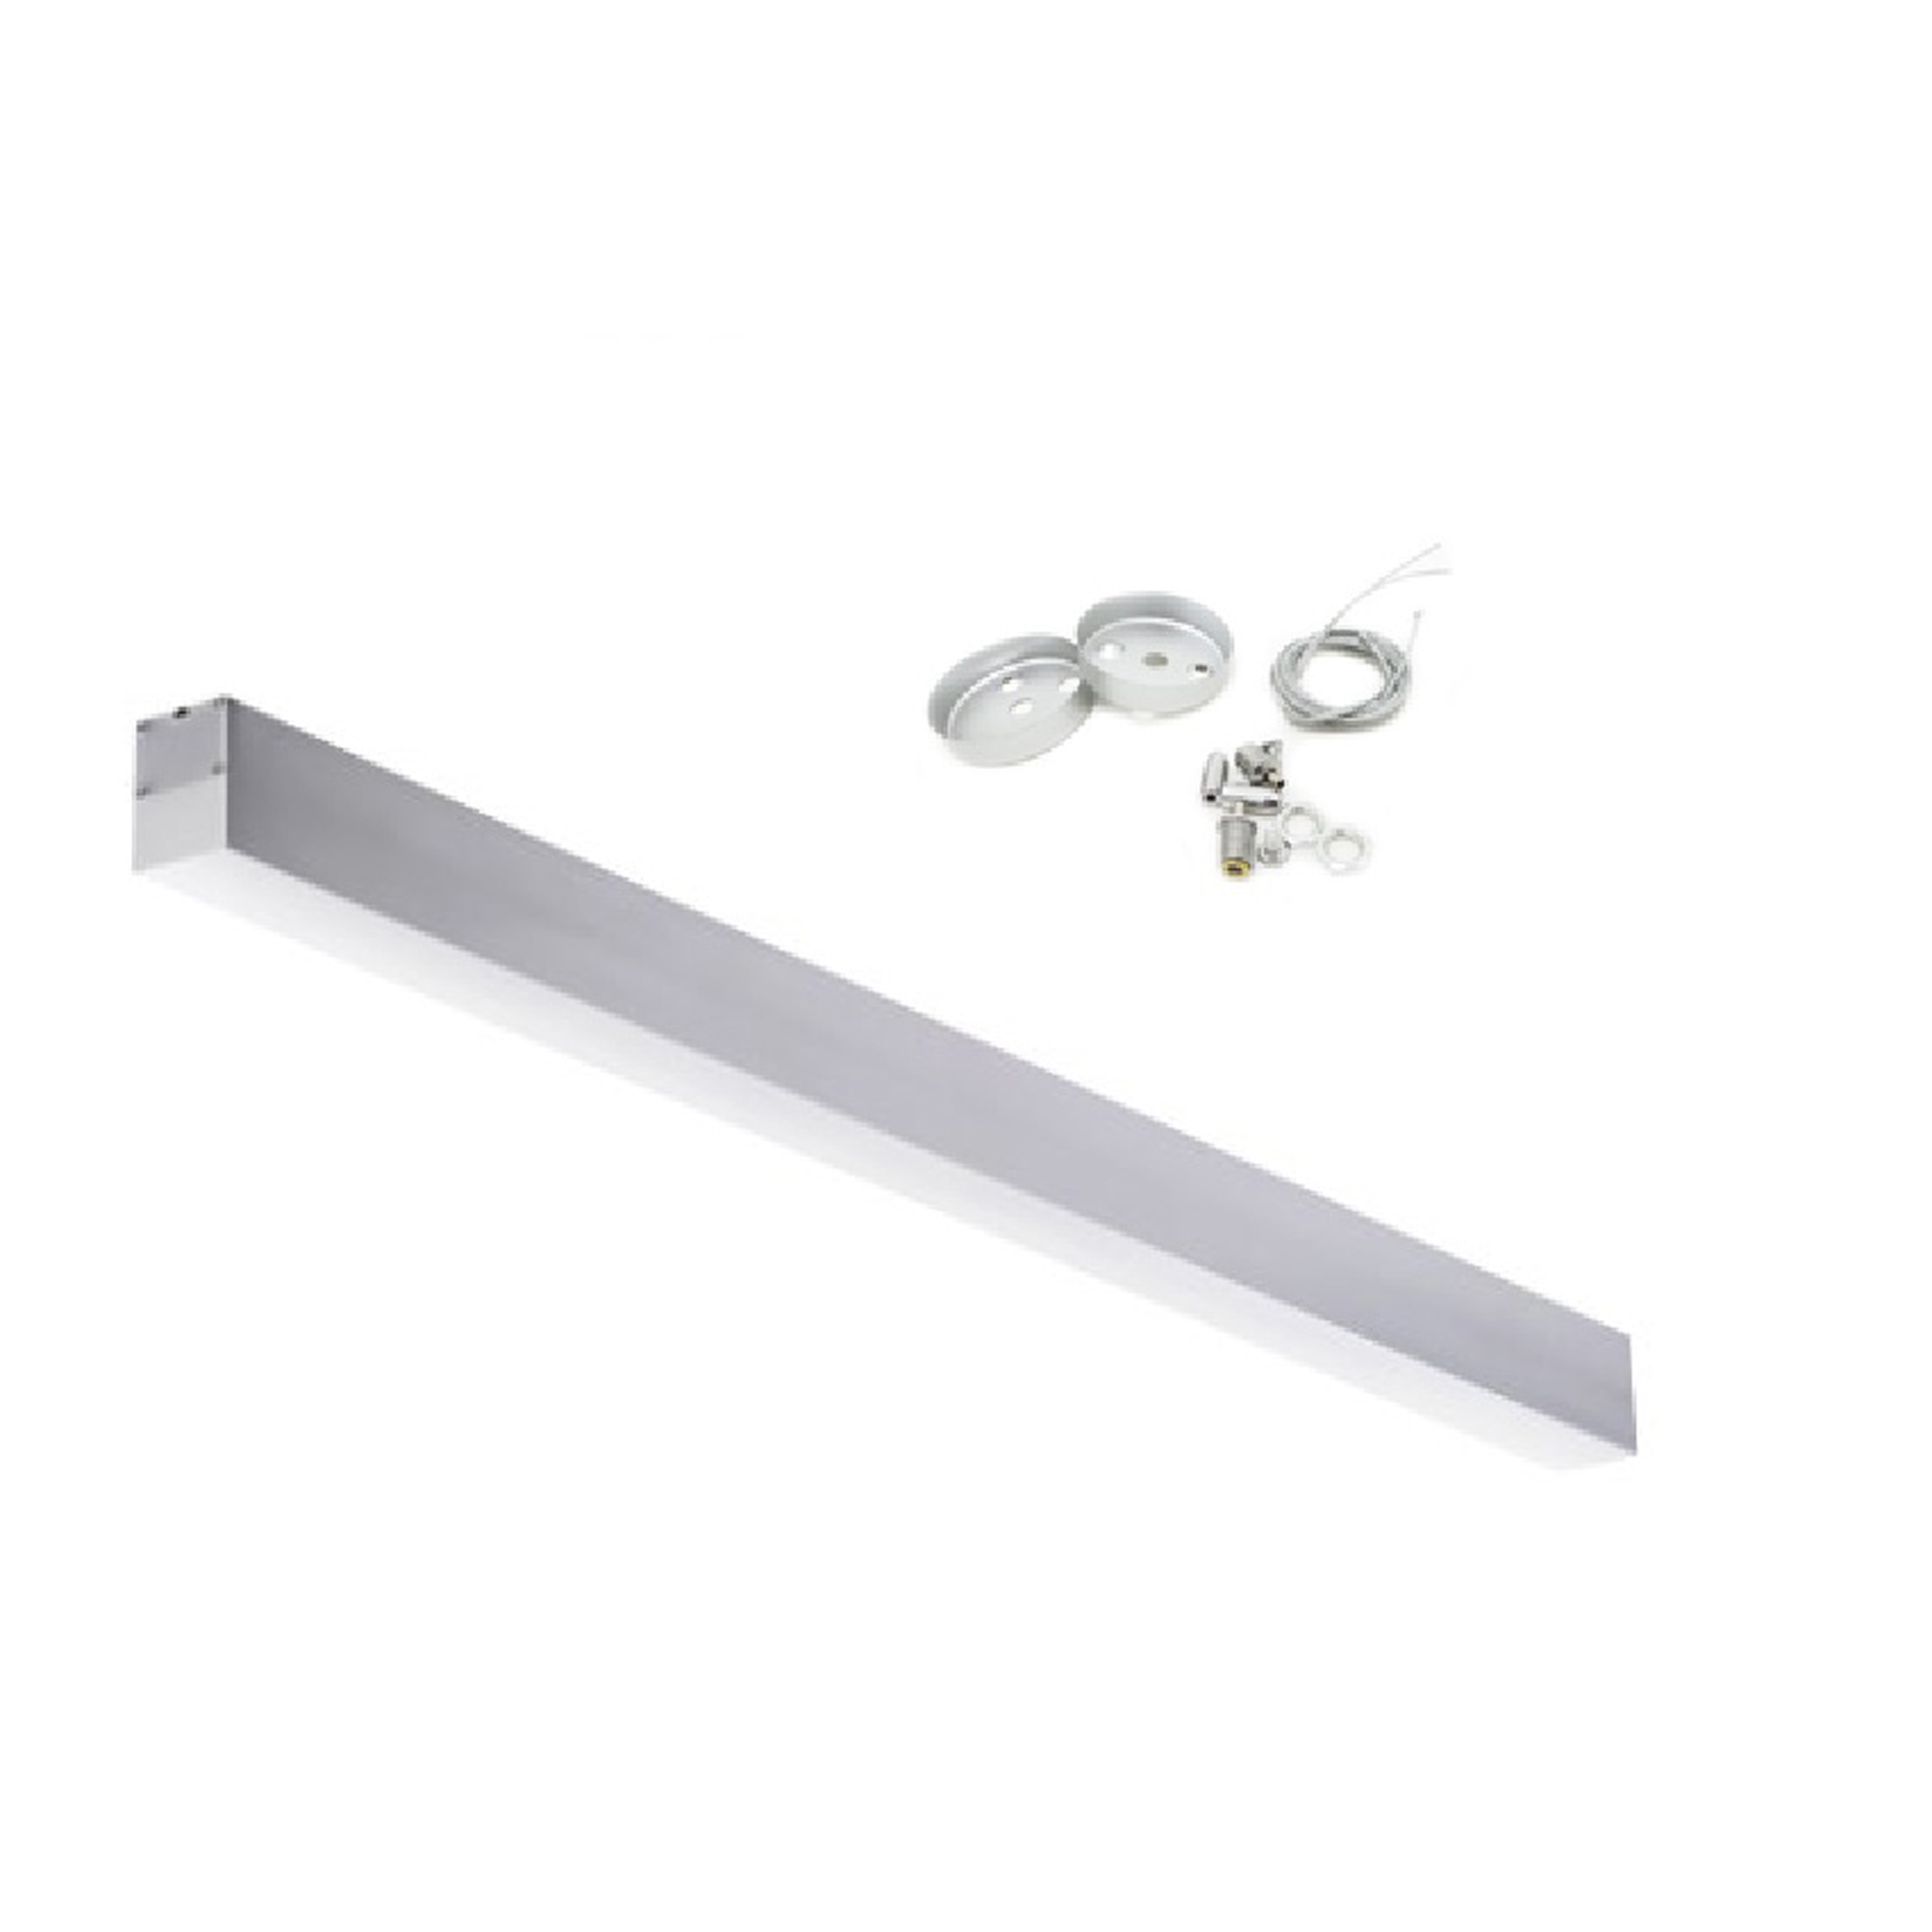 LED surface-mounted luminaire 36W 120x7x4cm Suspension with steel cable Silver Ir-8-36W